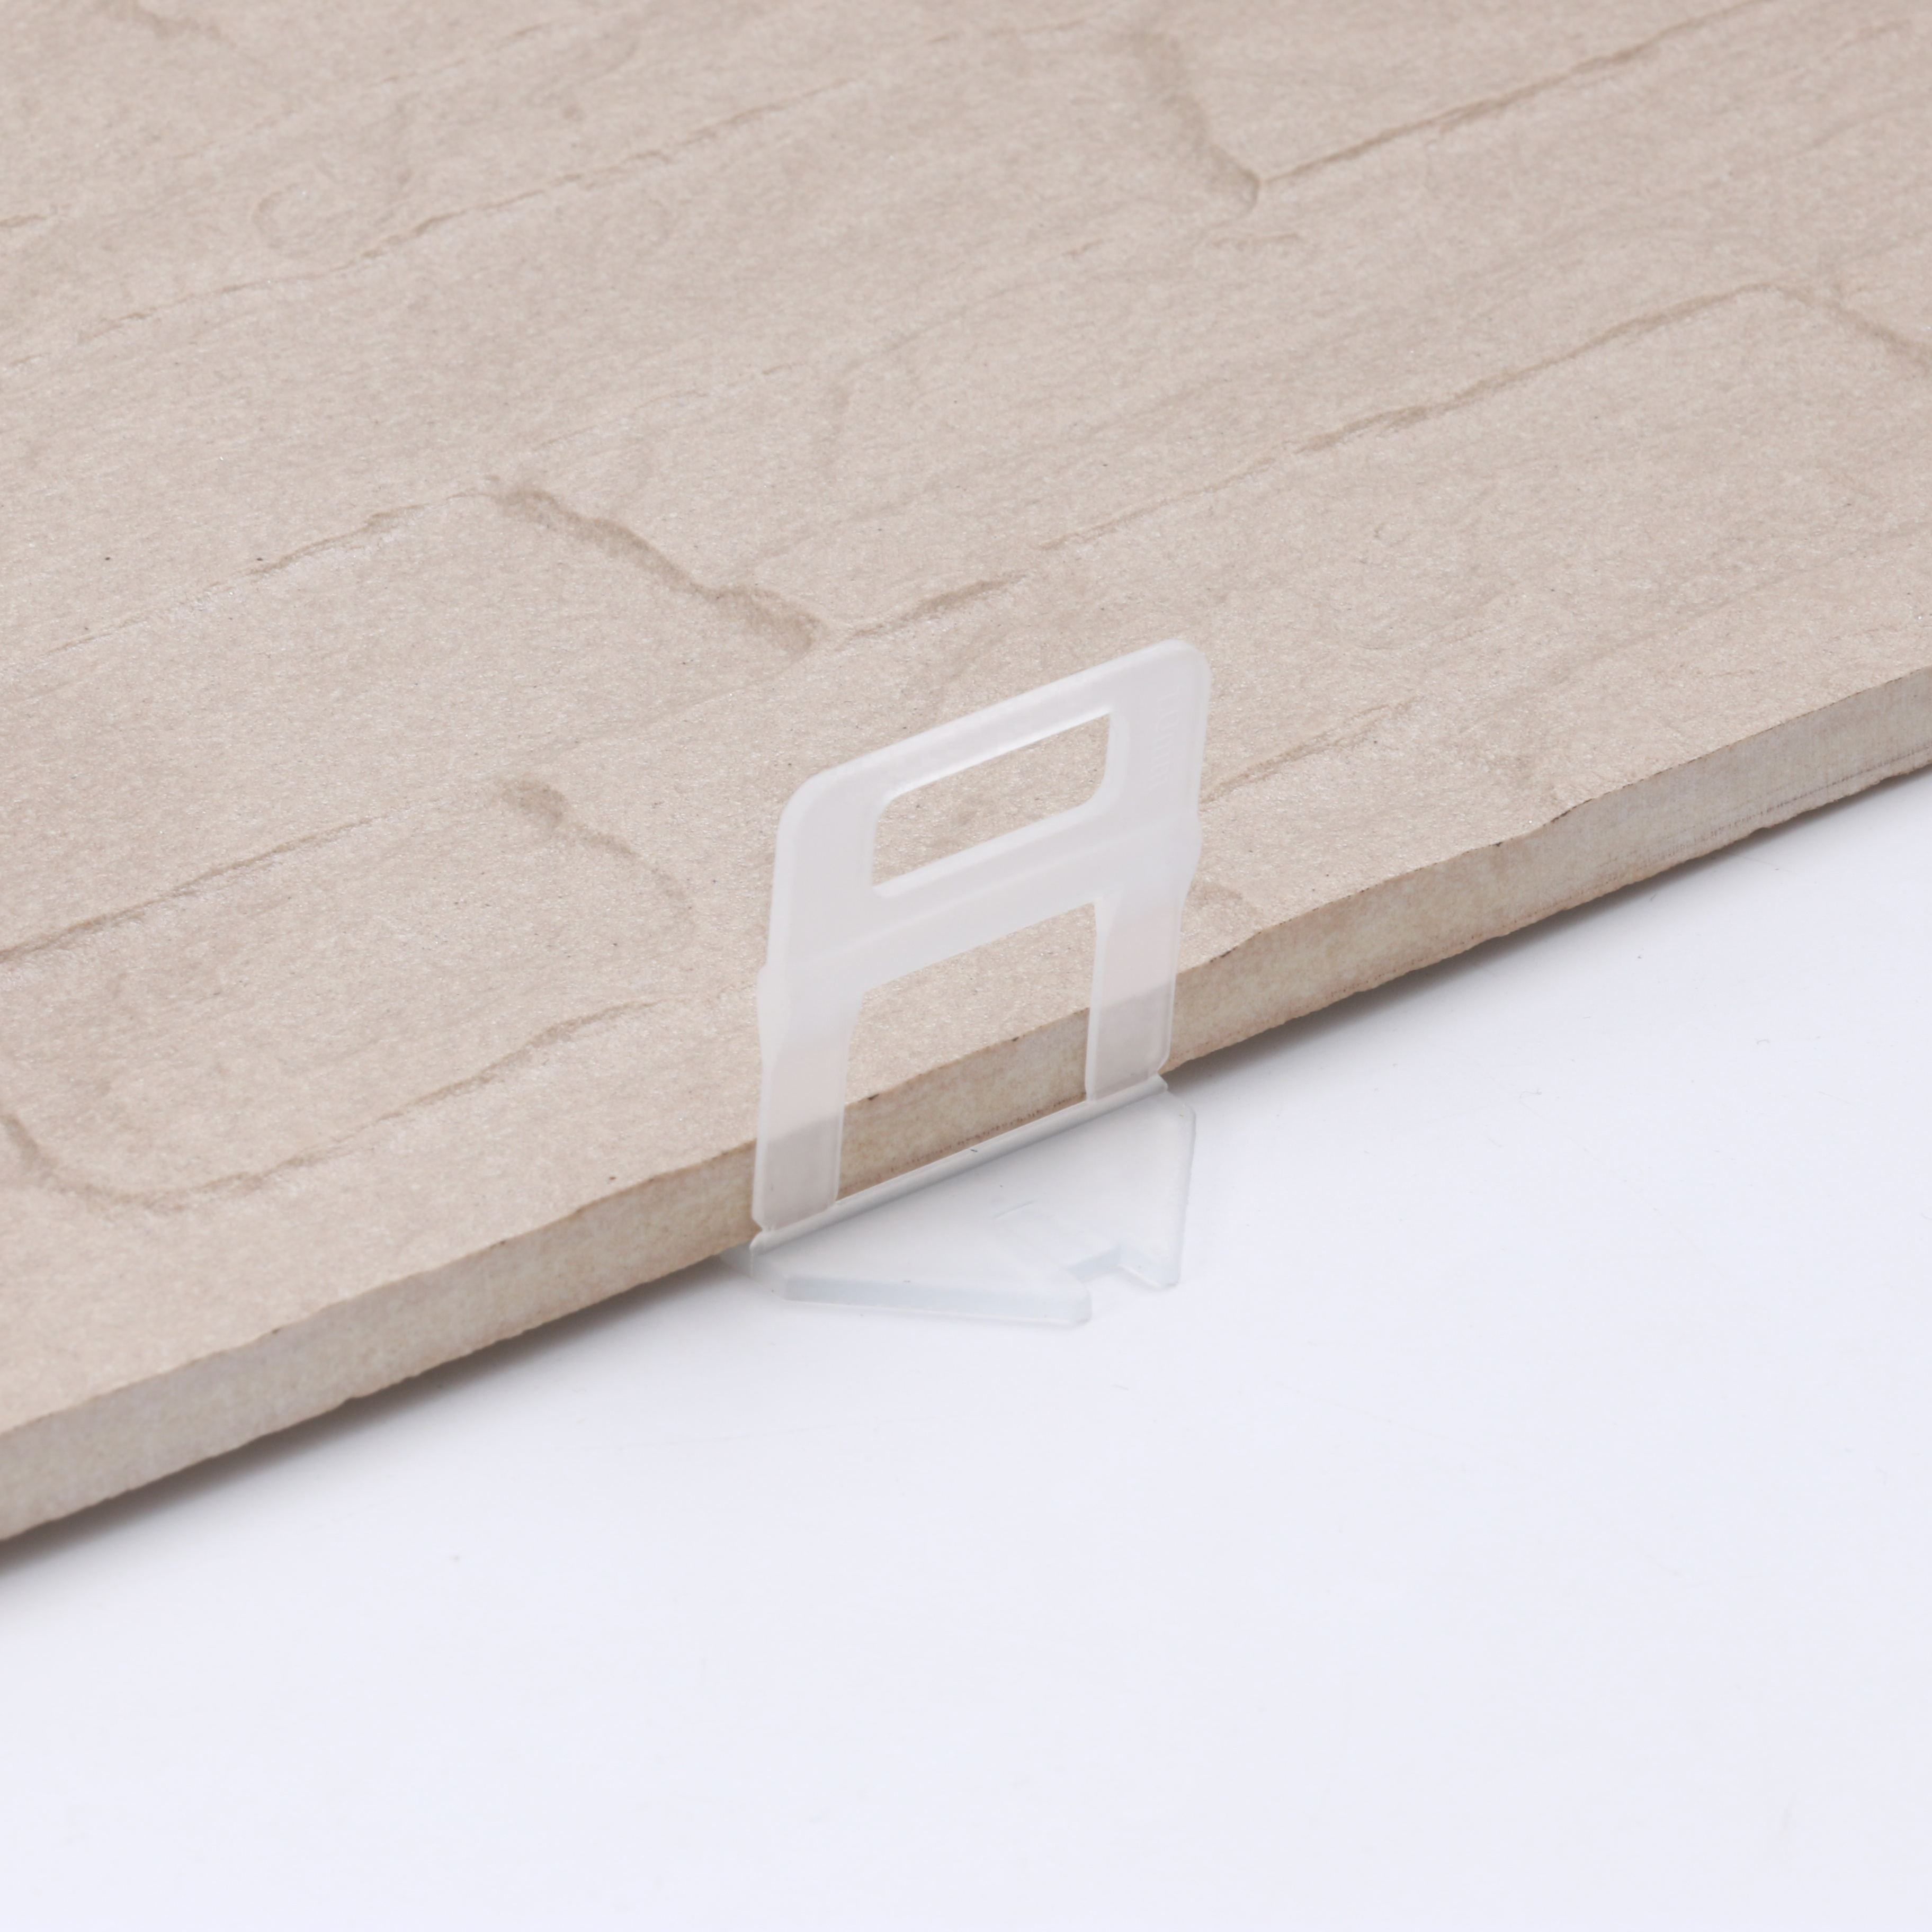 Tile leveling system in tile accessories 1MM 1.5MM